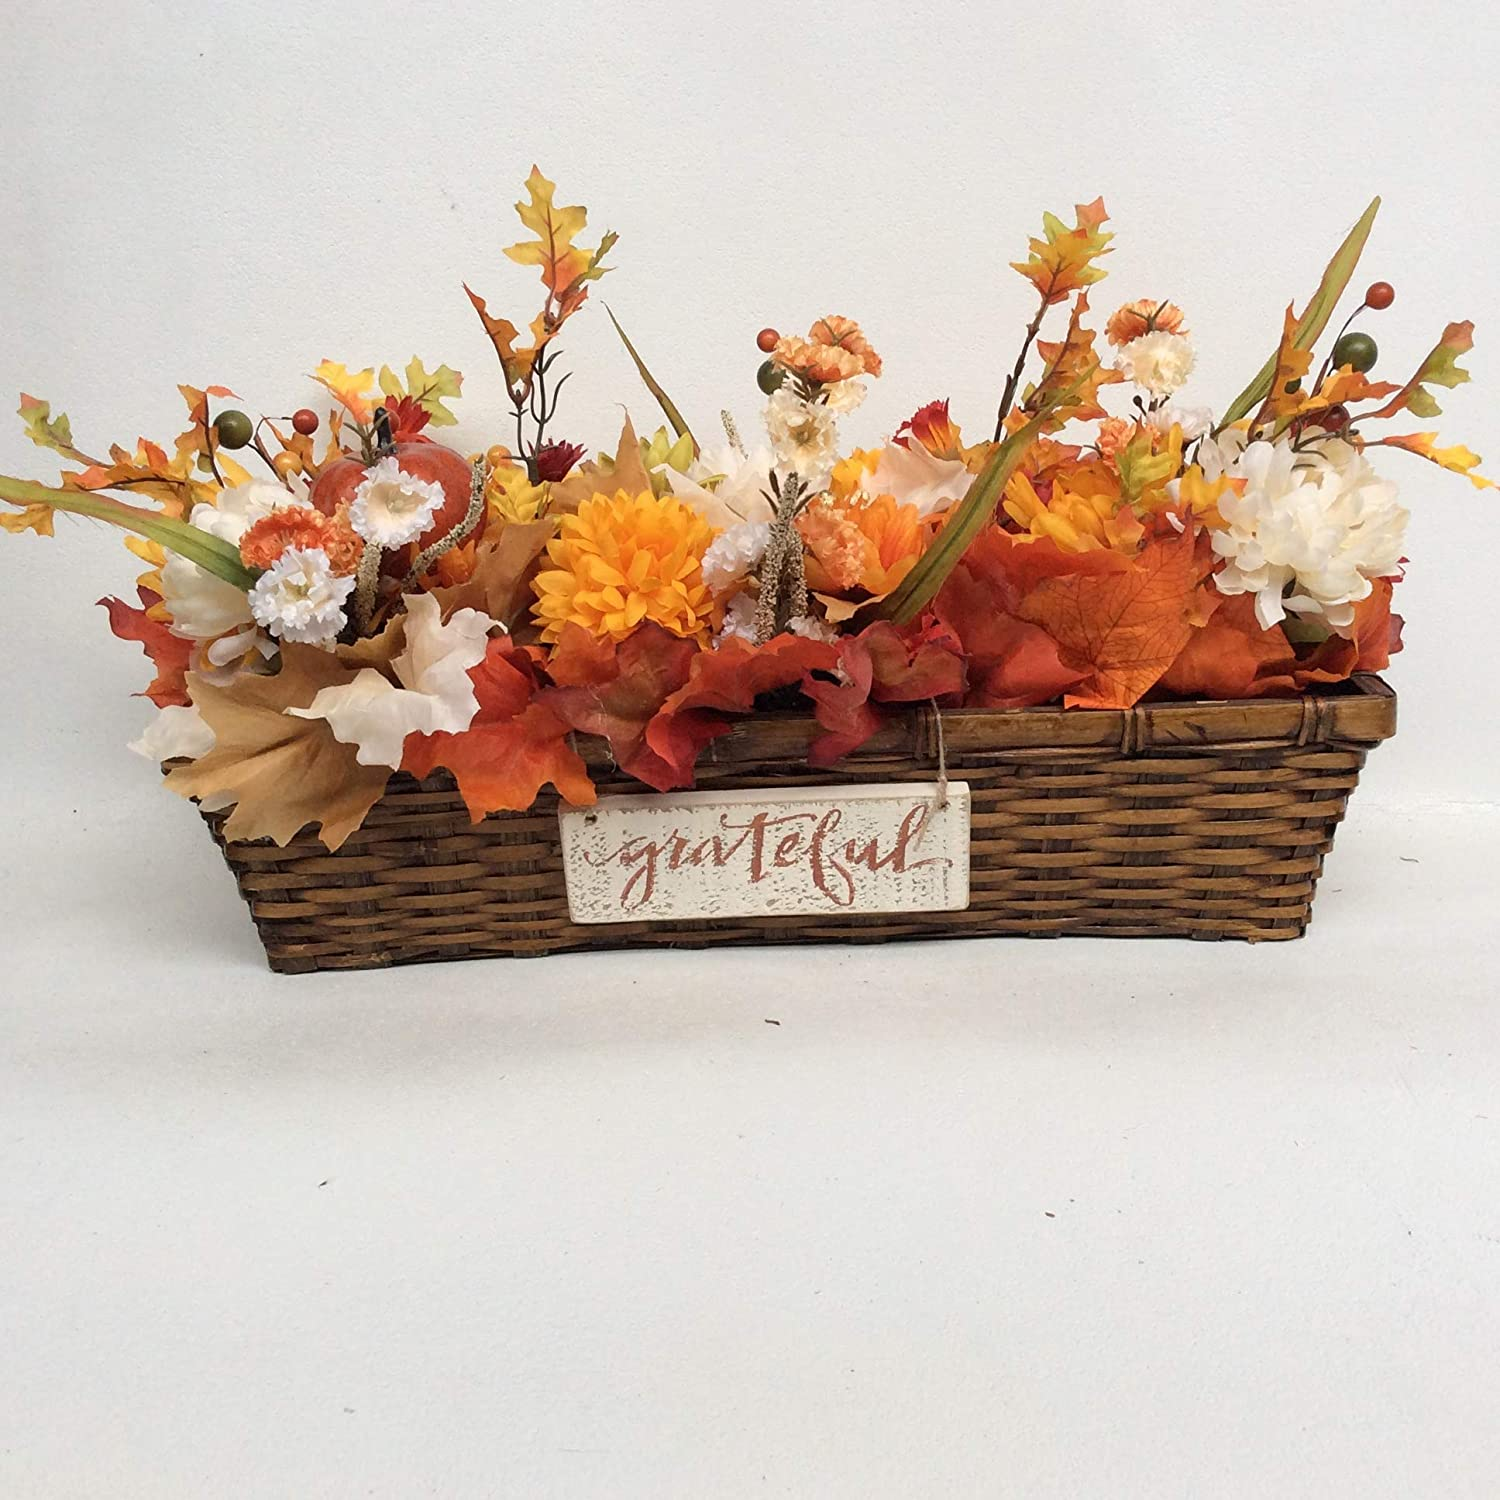 Bombing new work AGD Fall Decor- Blessed Grateful Basket Long Floral Cent Display Latest item